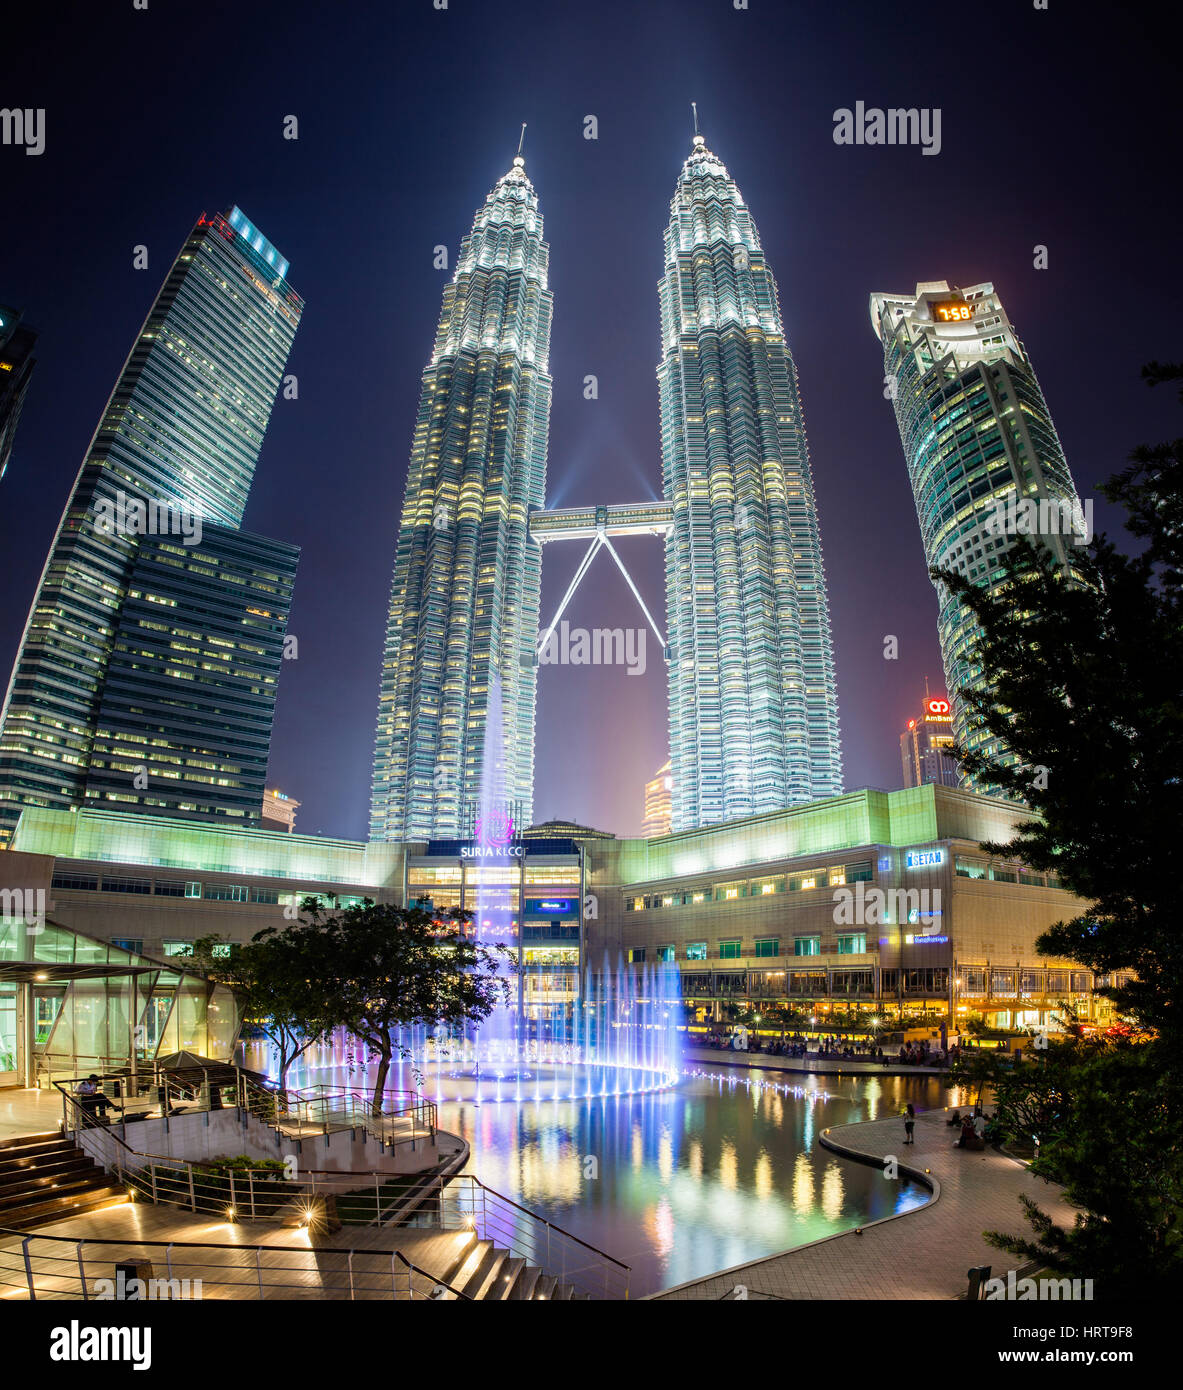 Kuala Lumpur, Malaysia -  24 July 2014: Fountain show at night in front of Petronas Twin Towers and Suria KLCC mall. - Stock Image